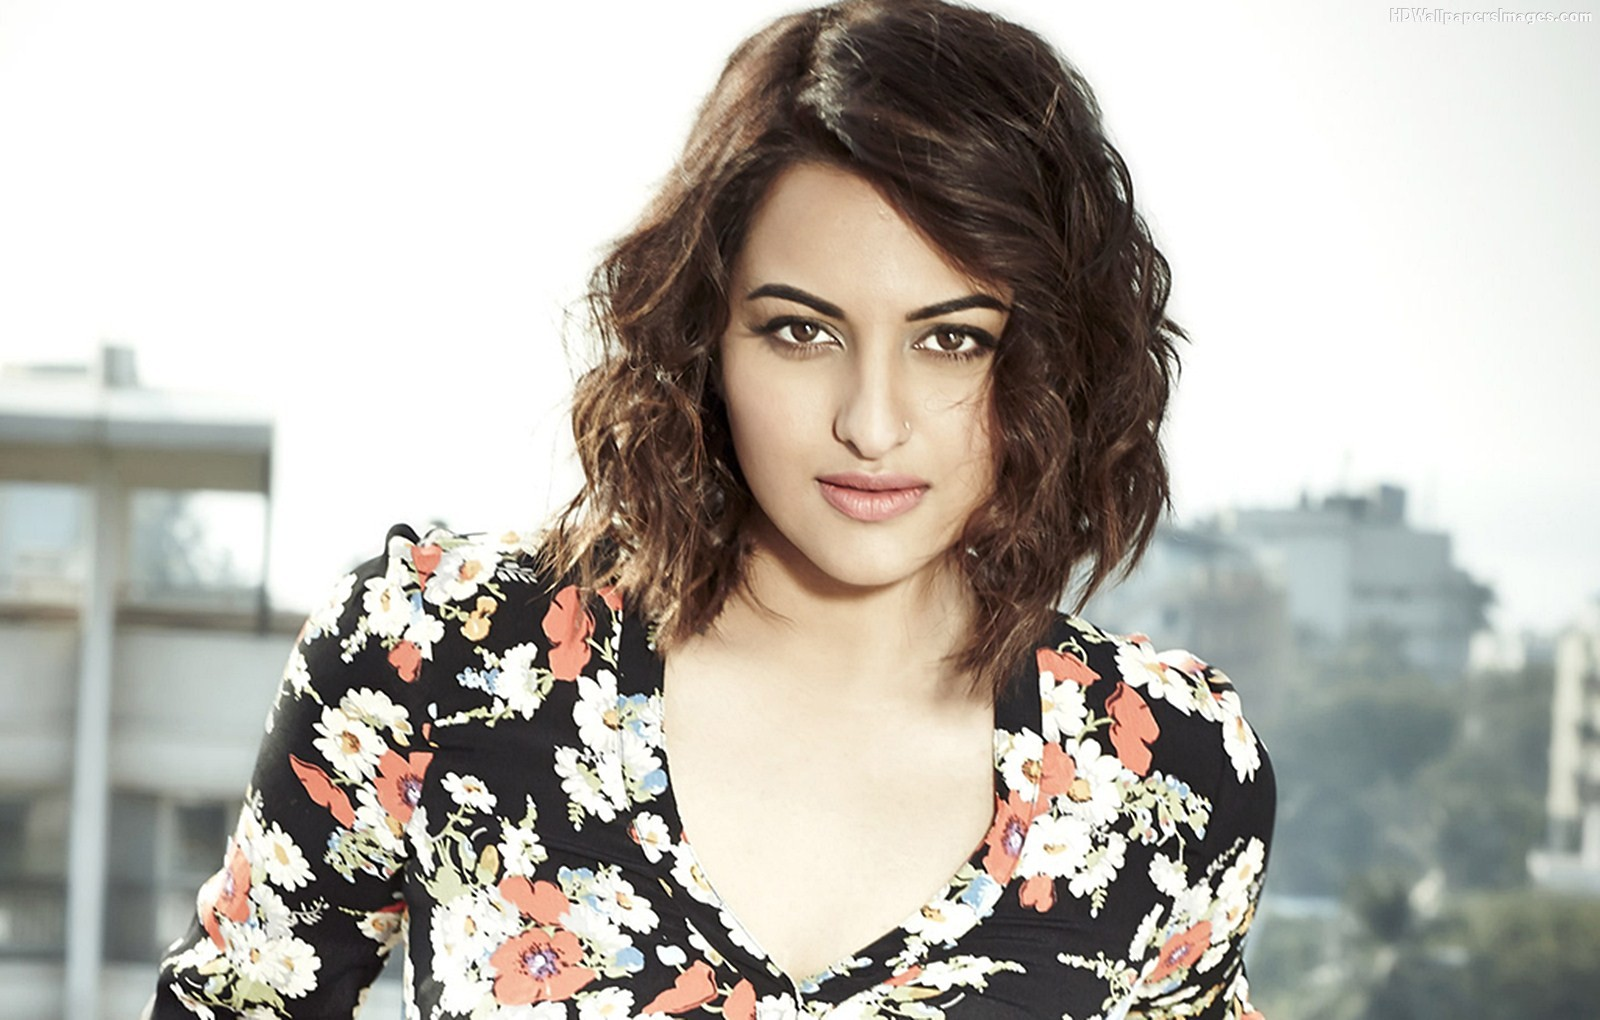 sonakshi sinha images sonakshi sinha ~ the utterly stunning beauty